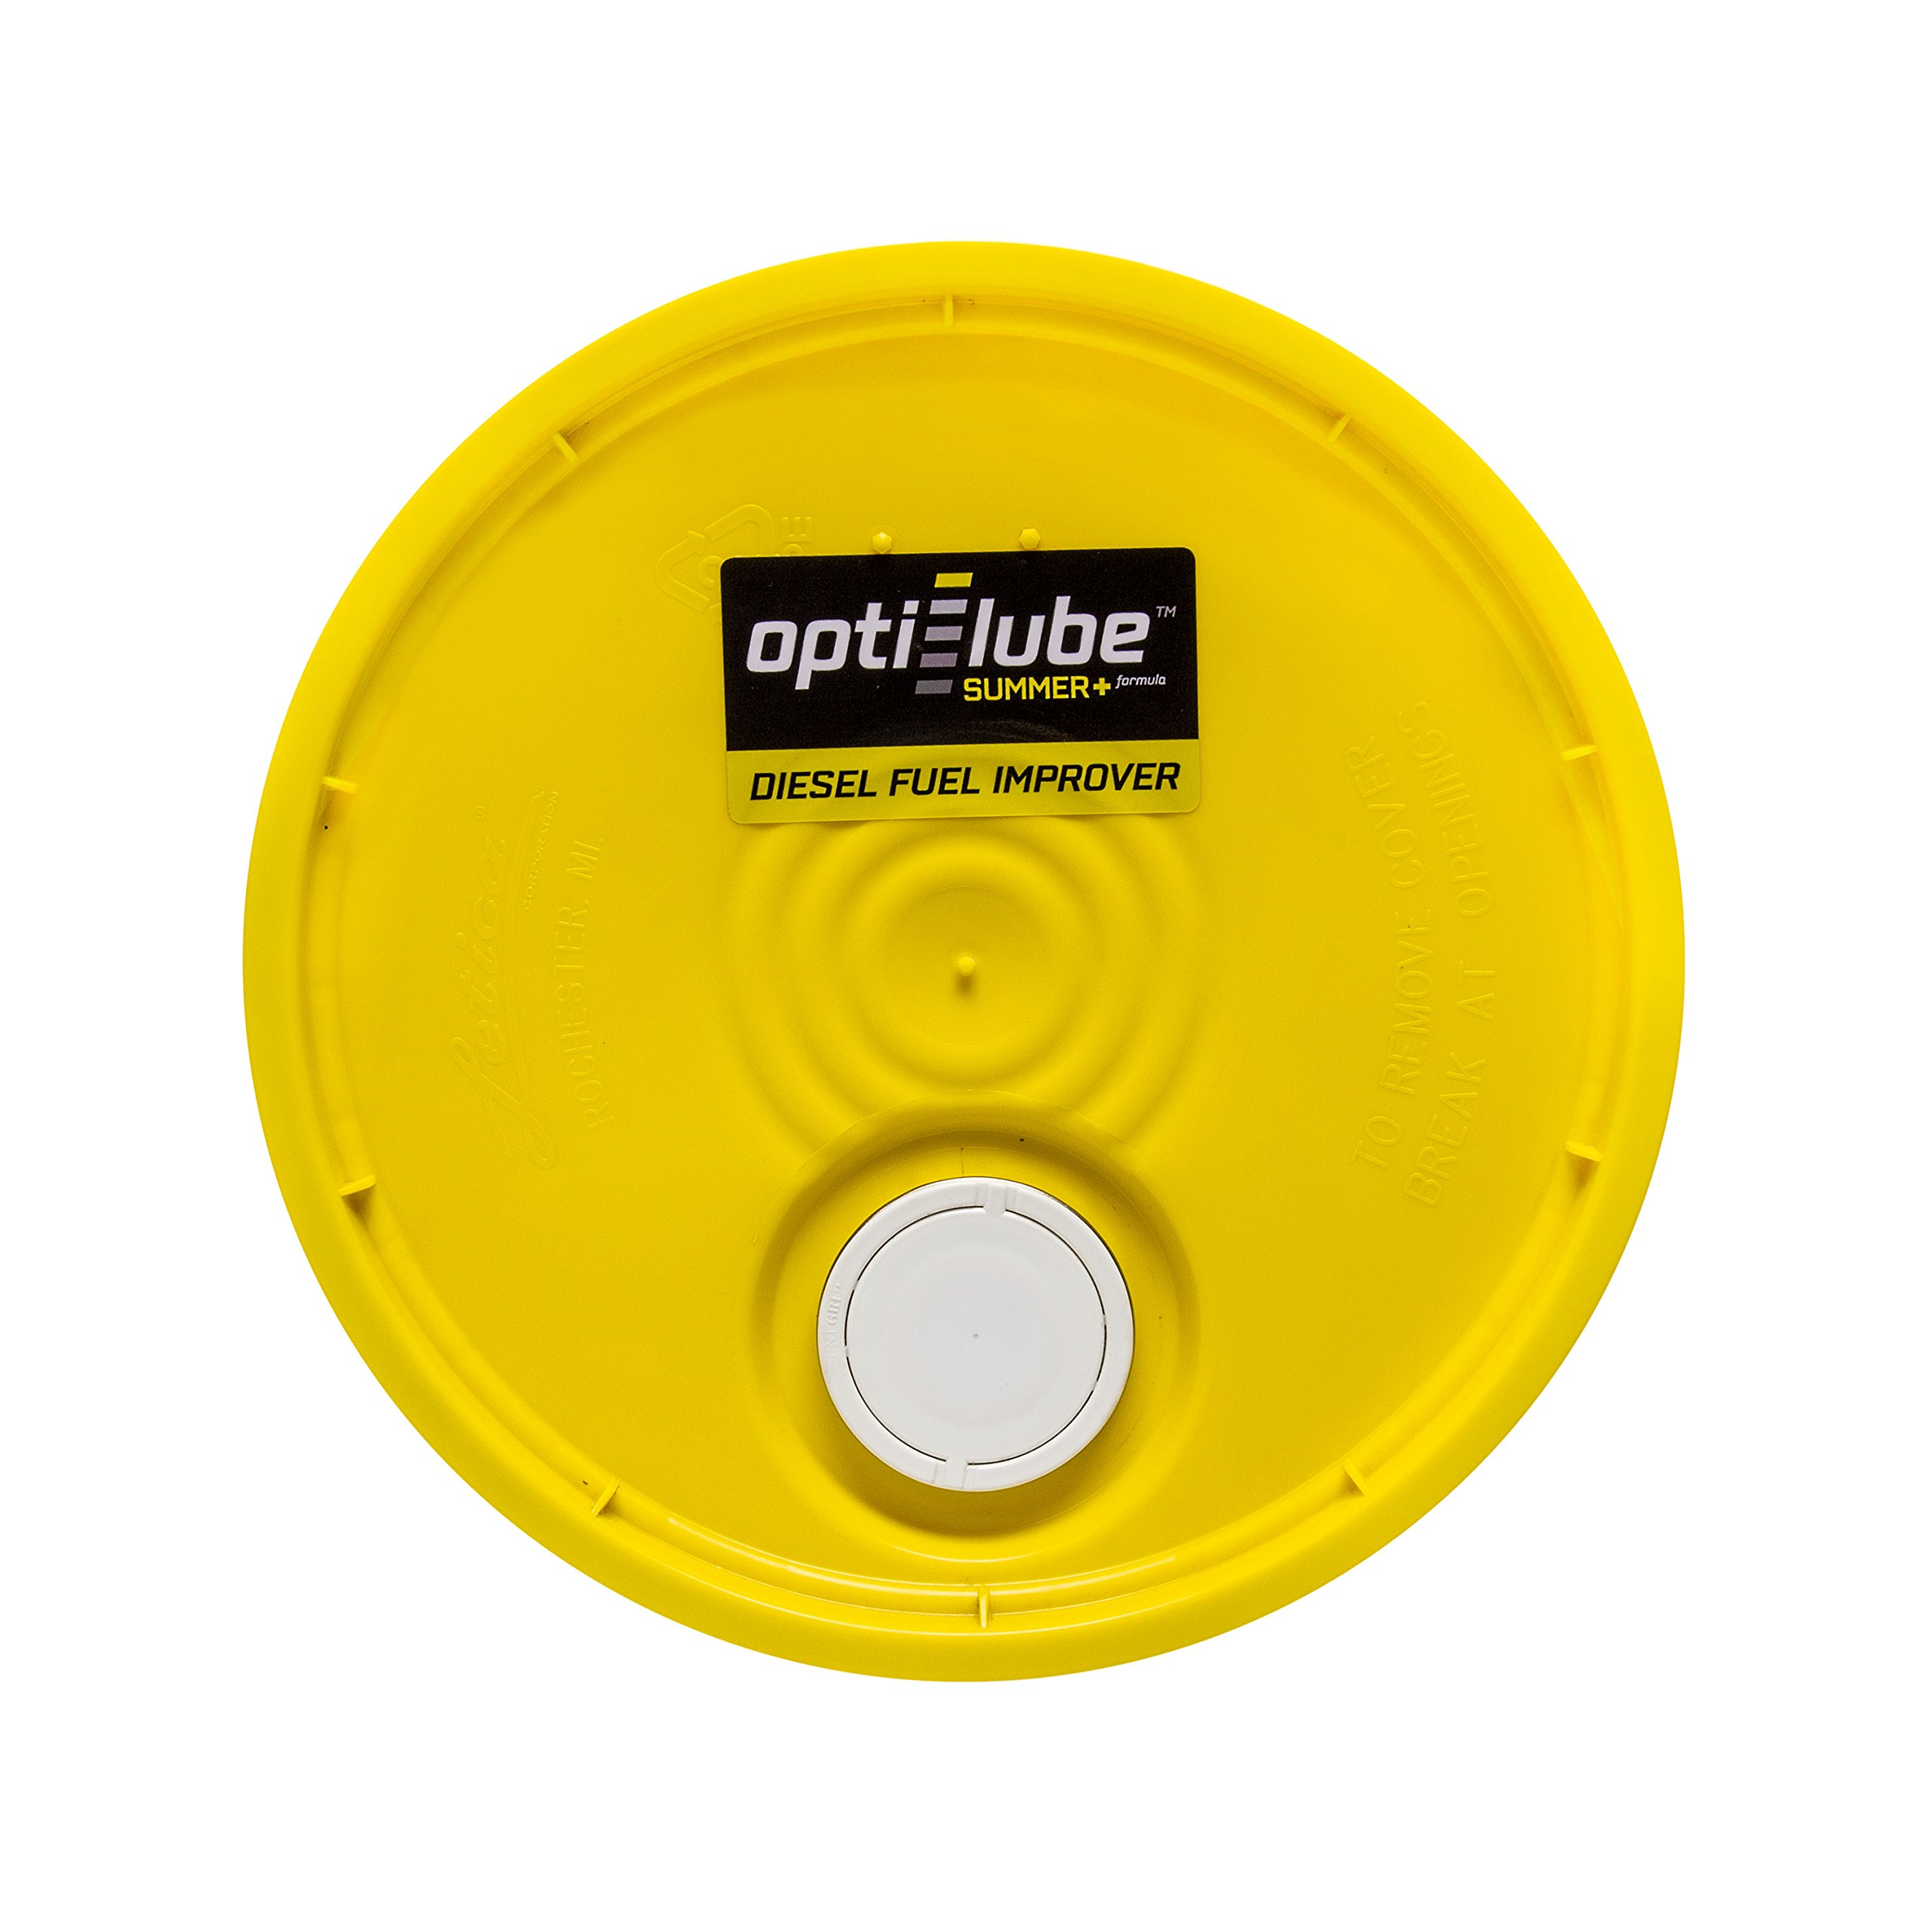 Opti-Lube Summer+ Formula Diesel Fuel Additive: 5 Gallon Pail without Accessories Treats up to 12,800 Gallons